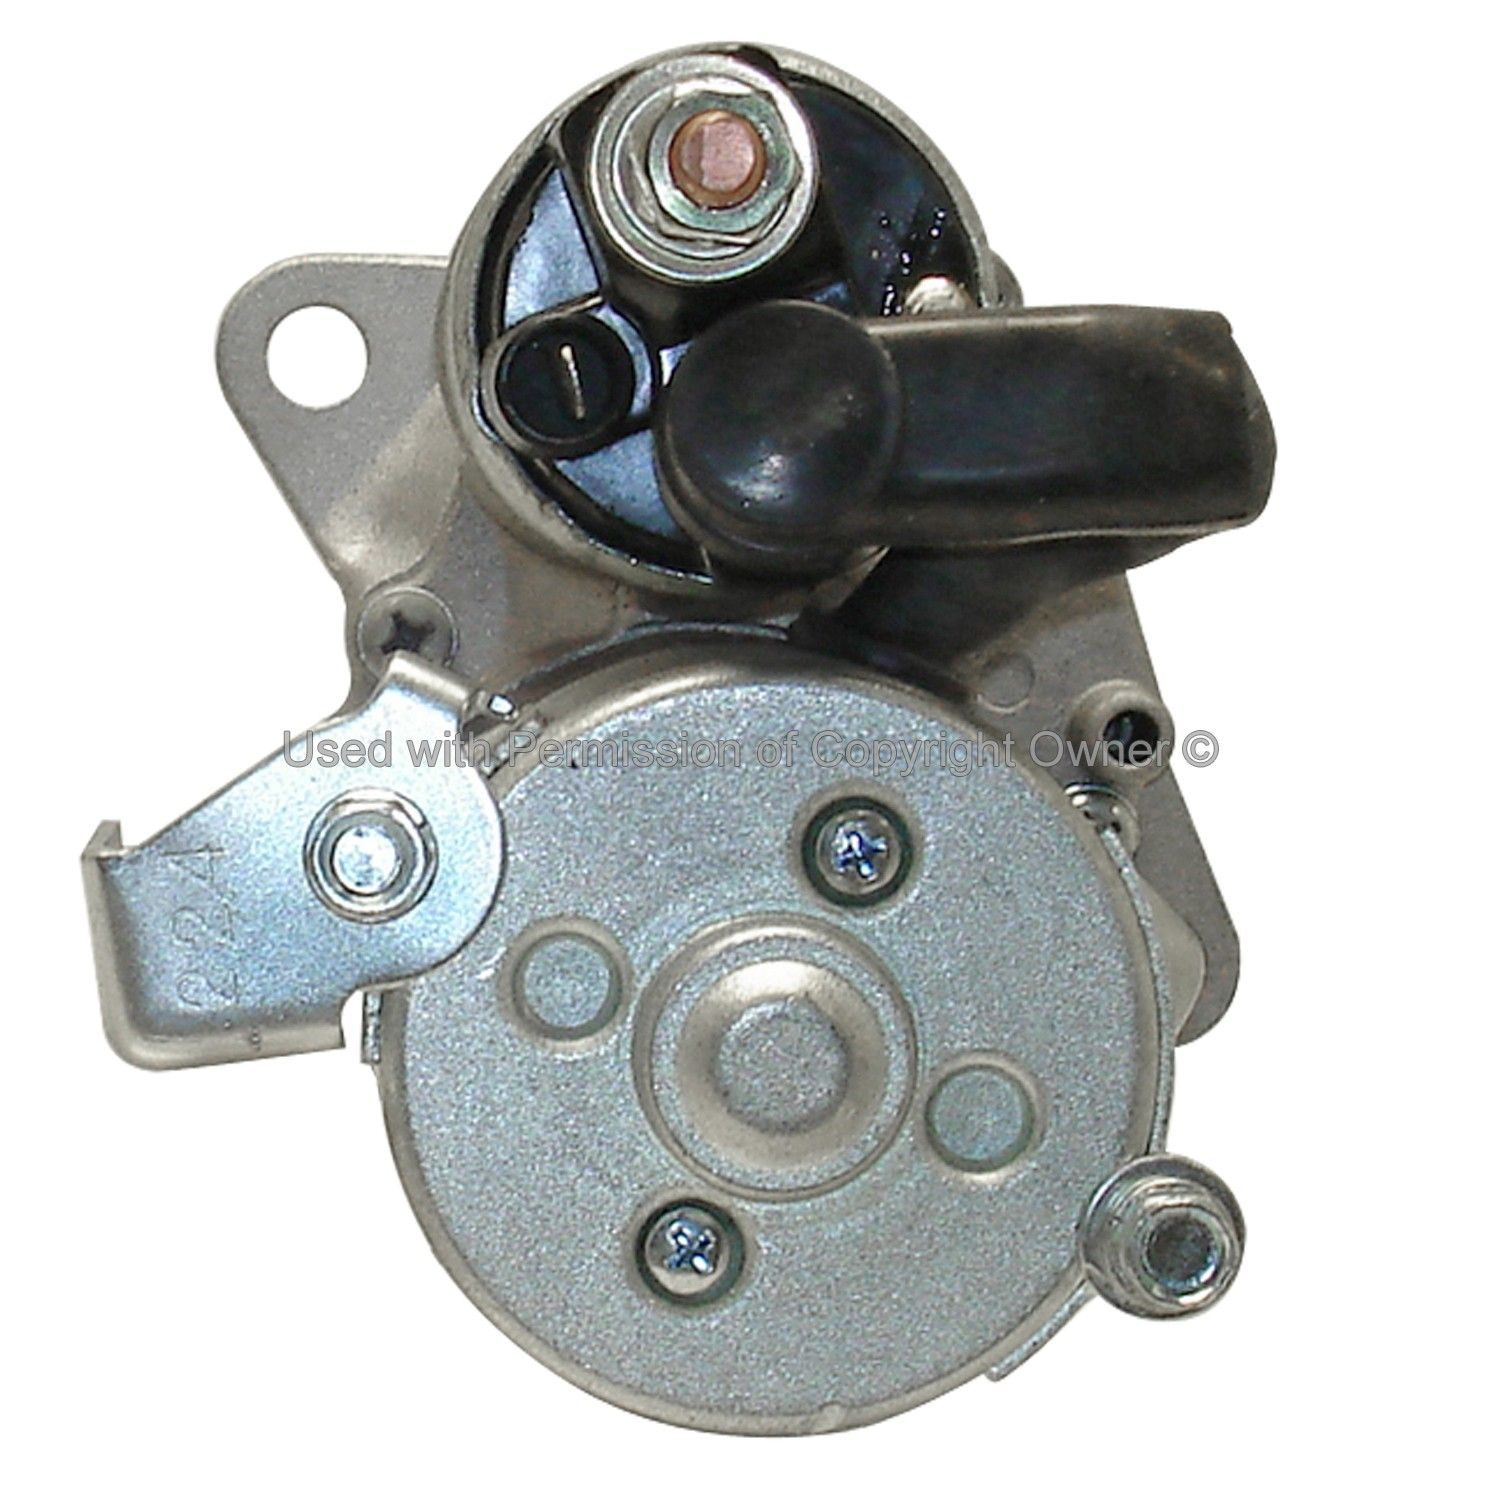 Honda Civic Starter Motor Replacement (BBB Industries, Bosch, Denso on lexus ls400 starter, buick rendezvous starter, toyota supra starter, nissan hardbody starter, scion xa starter, mitsubishi evo 8 starter, honda cr-v starter, 2006 civic starter, del sol starter, chevy hhr starter, ford e350 starter, 1999 jeep starter, honda passport starter, 2003 civic starter, 92 civic starter, 98 honda starter, honda accord starter, chevy s-10 starter, 94 civic starter, mitsubishi eclipse starter,